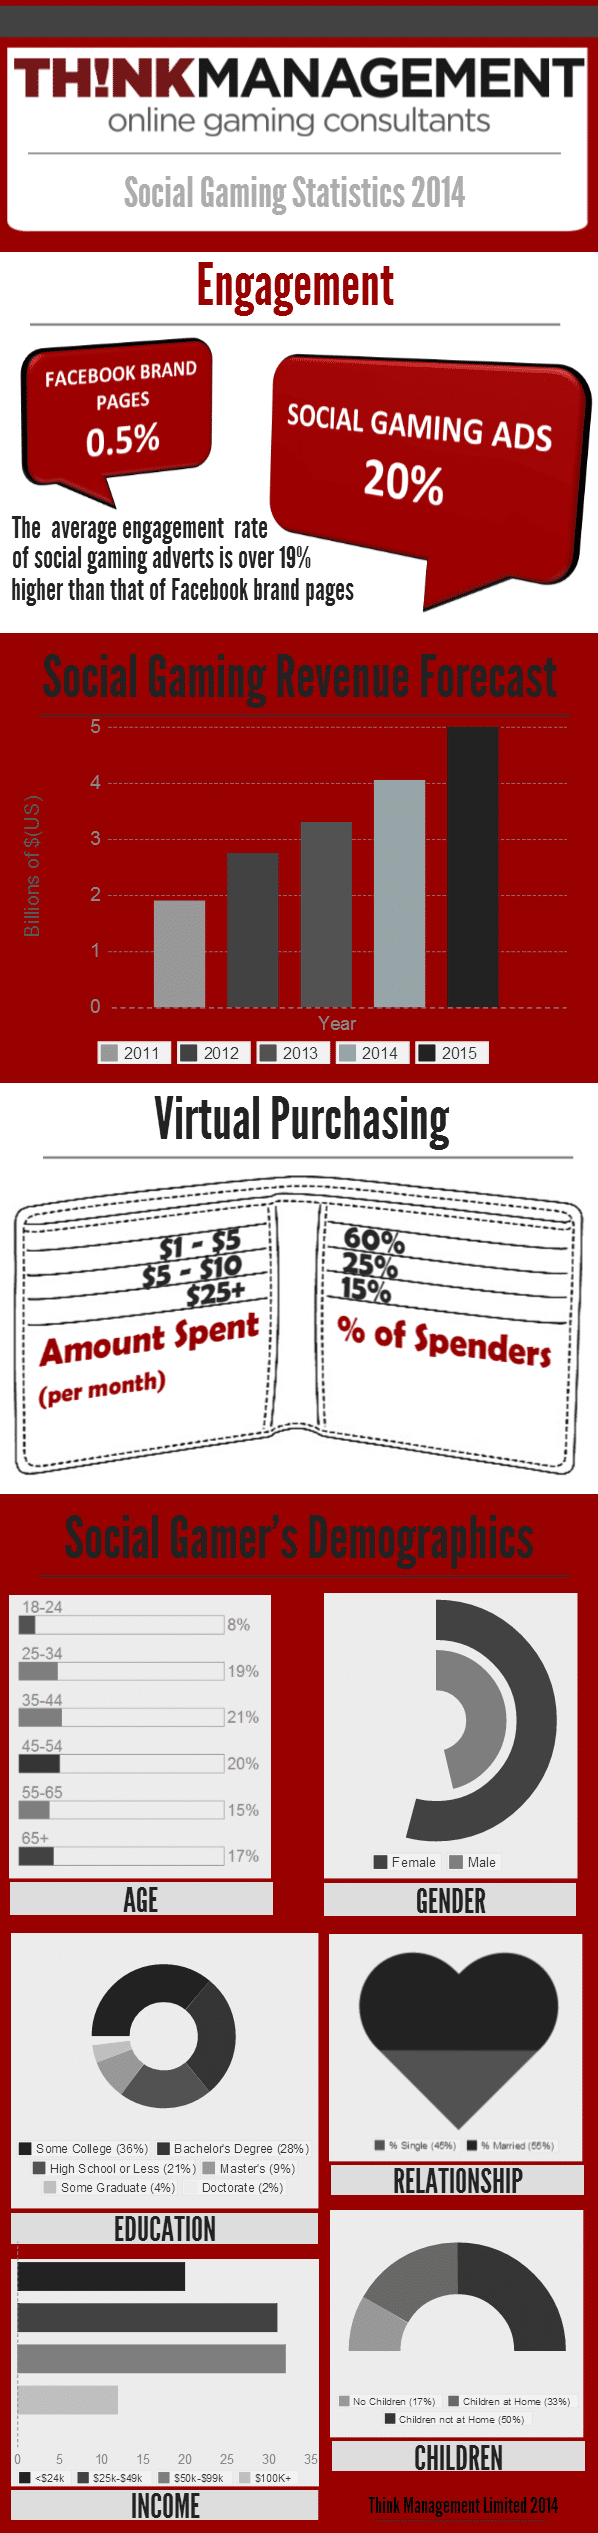 Social Gaming Statistics, Revenues, Purchasing & Demographics